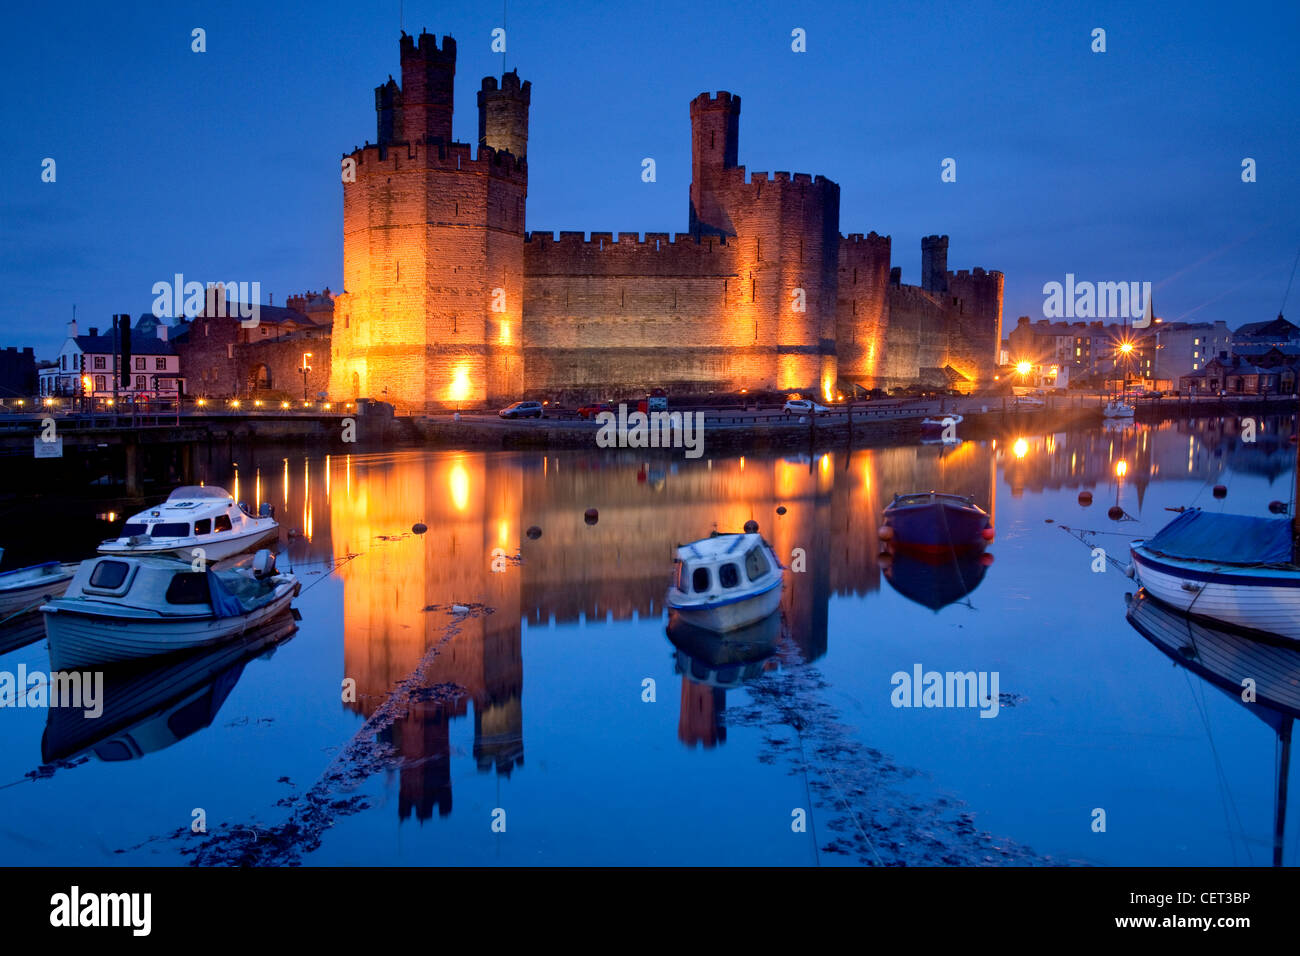 Caernarfon Castle at the mouth of the Seiont river at dusk. Stock Photo